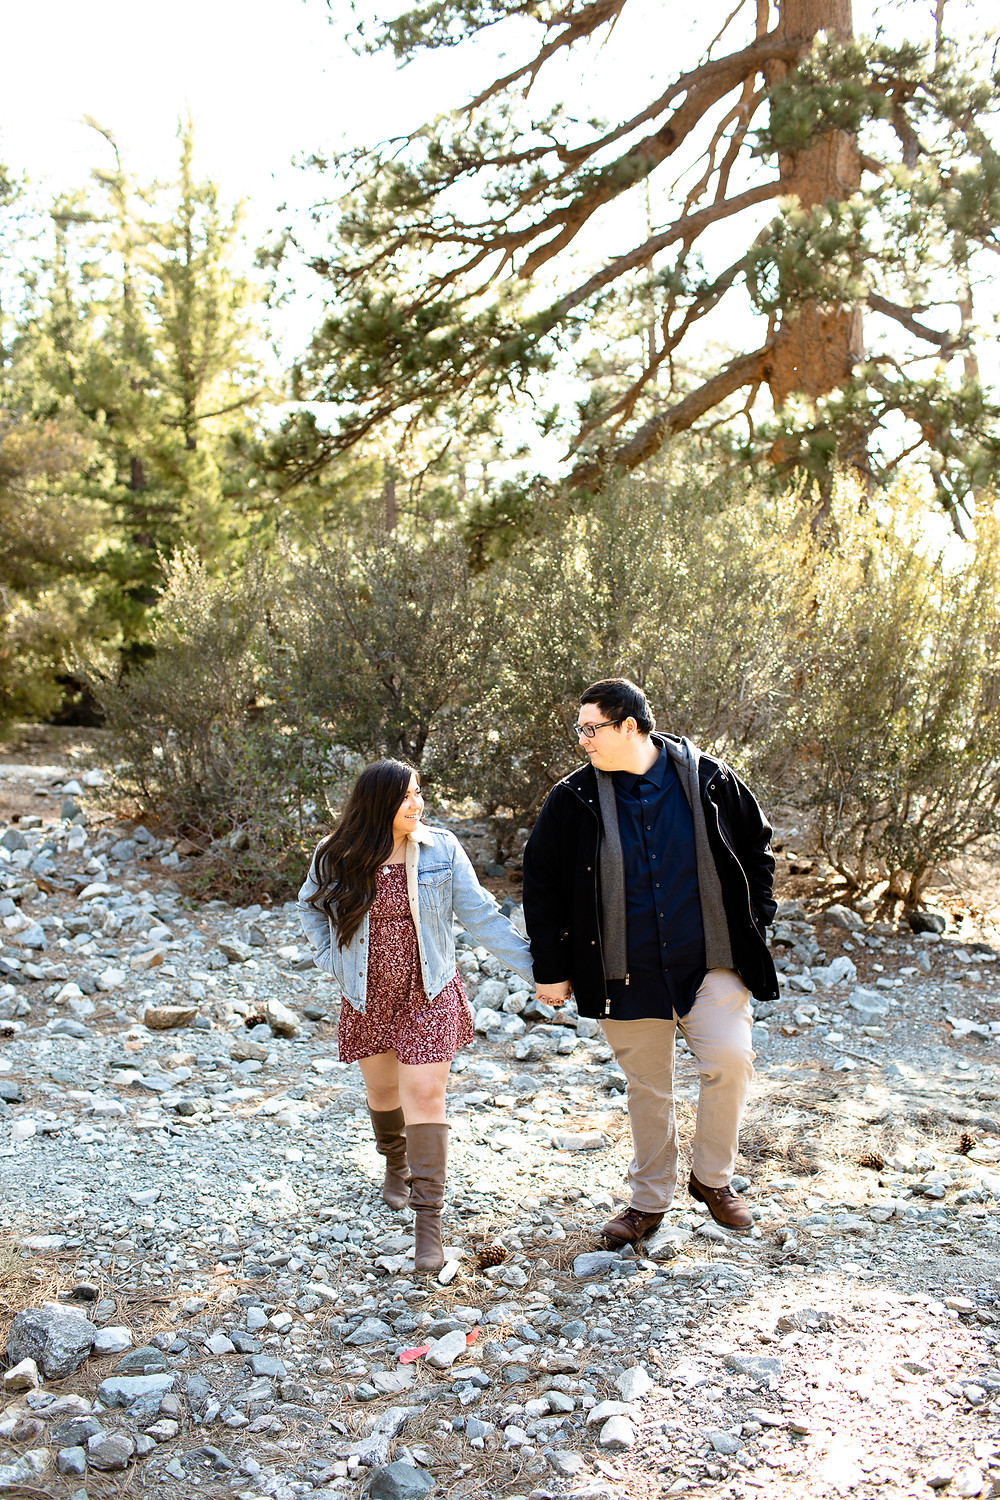 Man and woman walking in pine trees at Mount Baldy, California